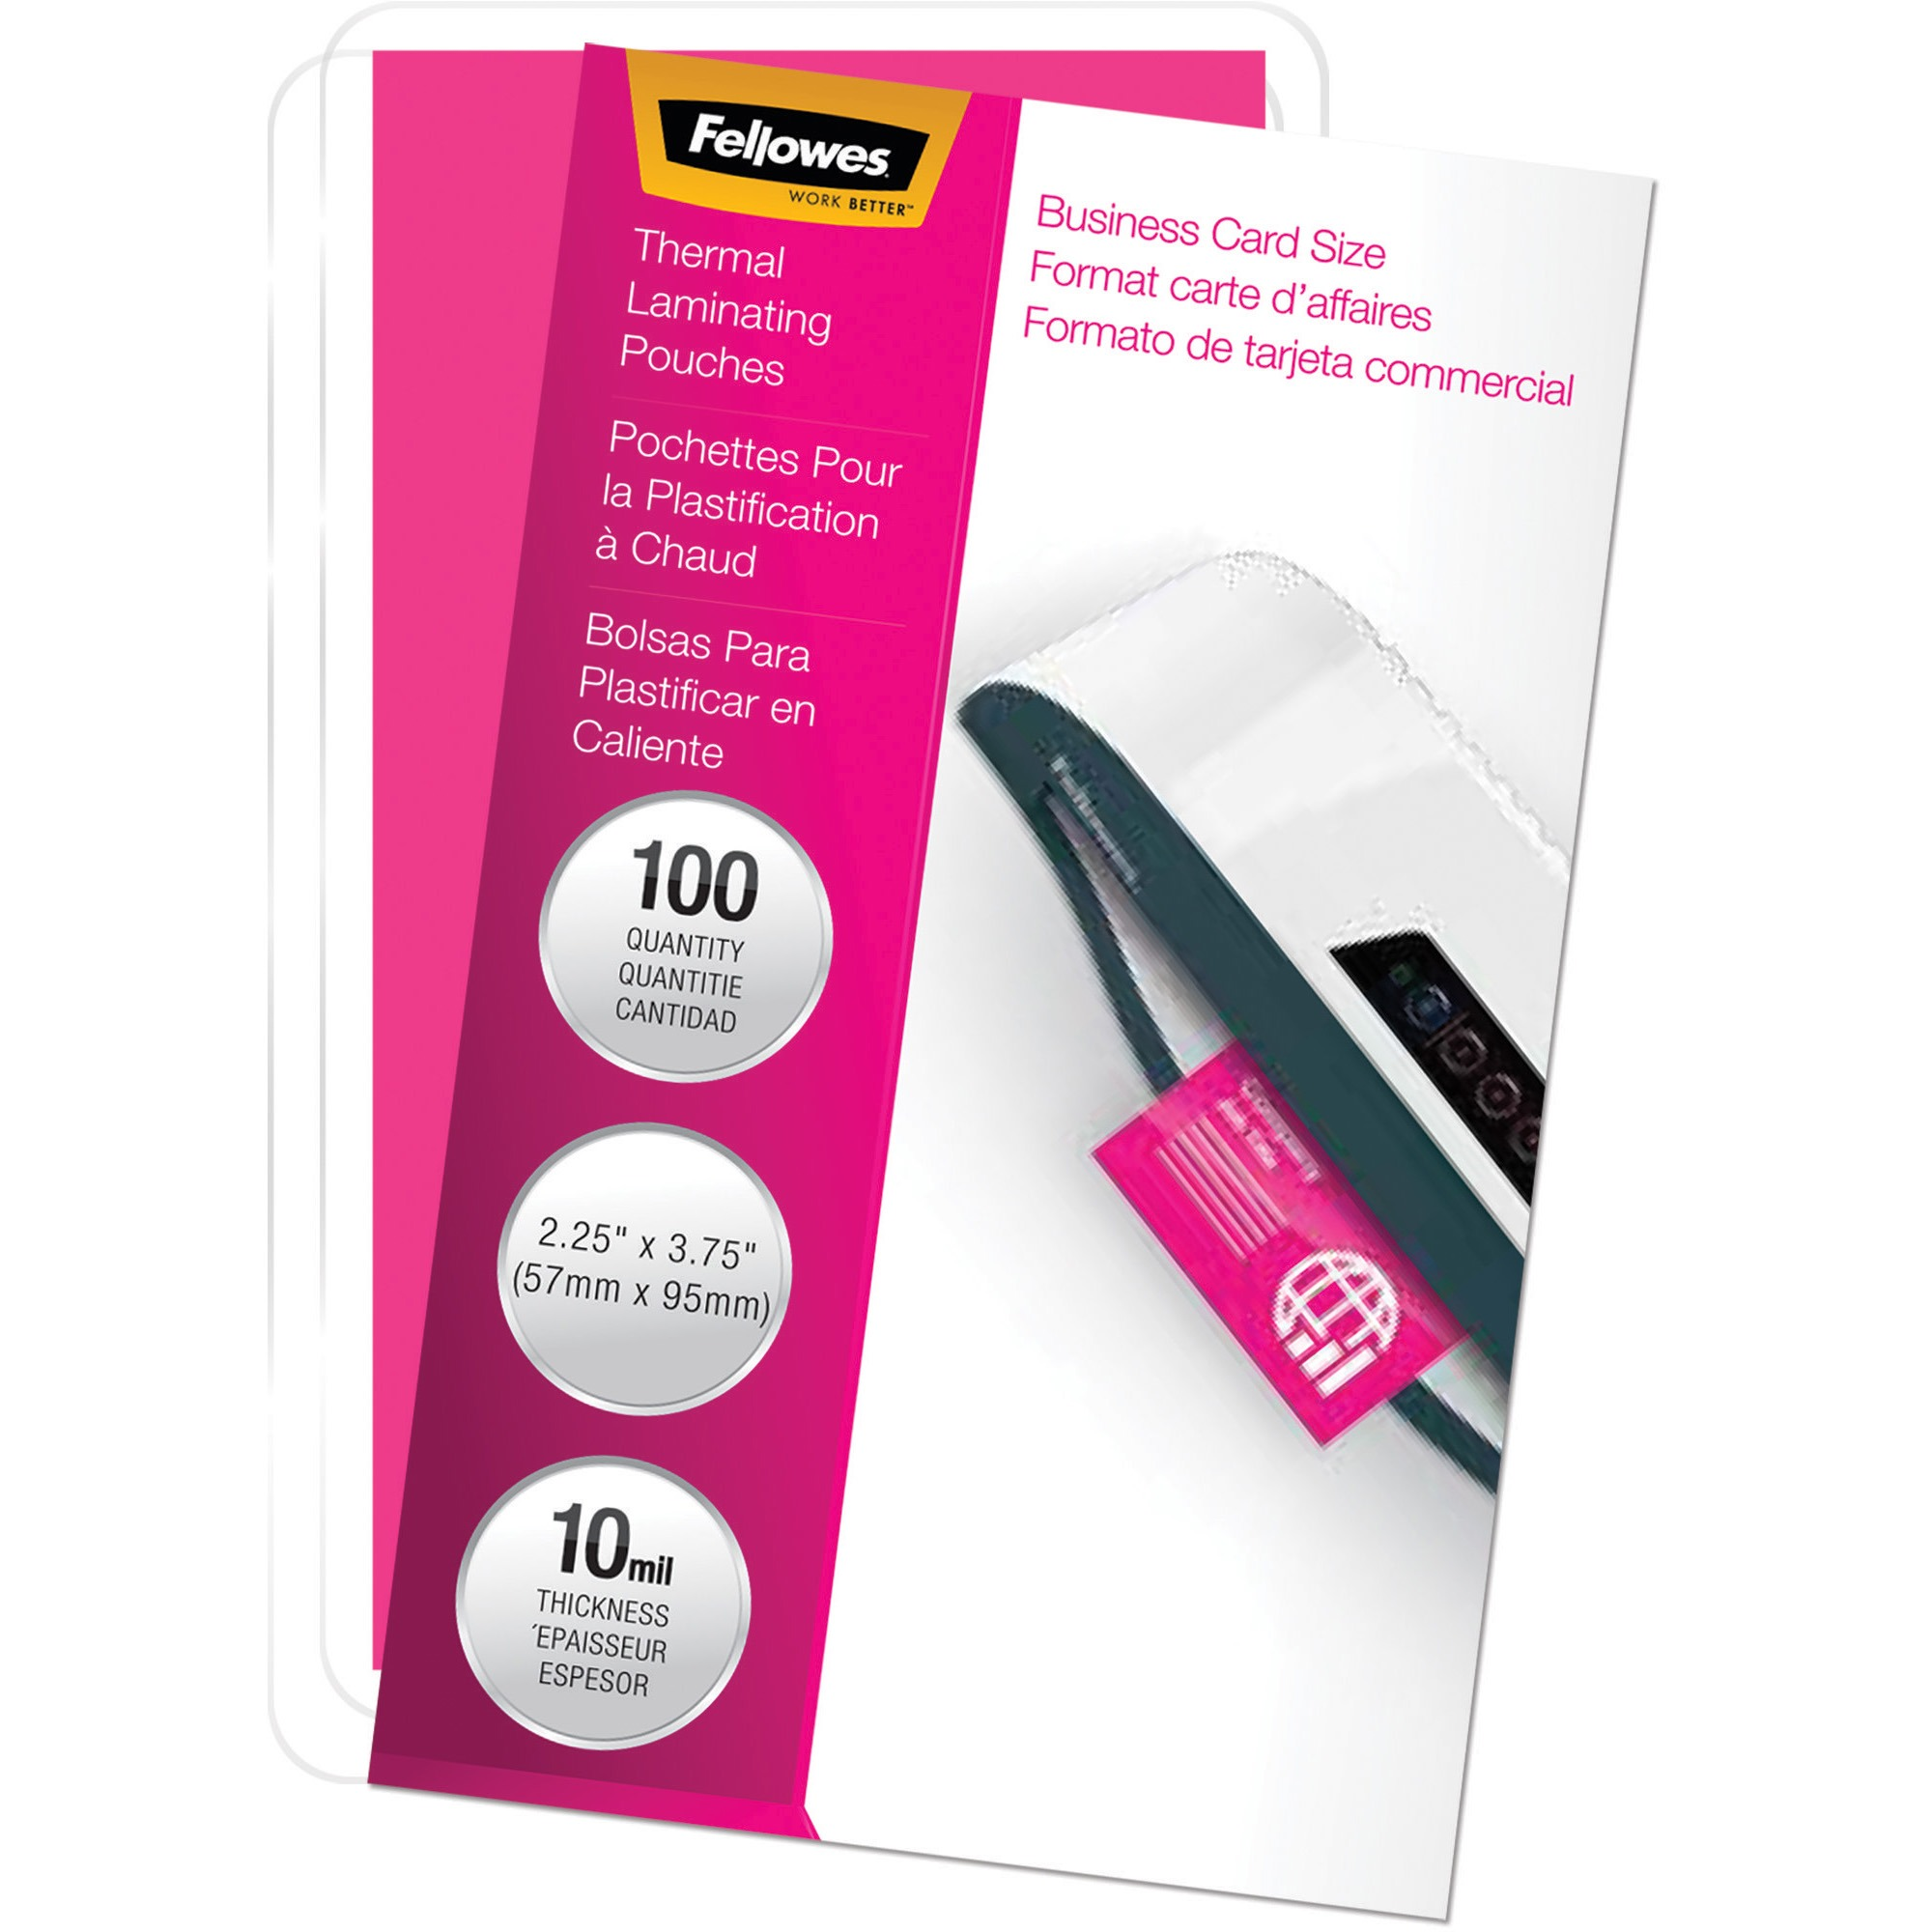 Laminating Pouch, 10mil, 2 1/4 x 3 3/4, Business Card Size, 100/Pack